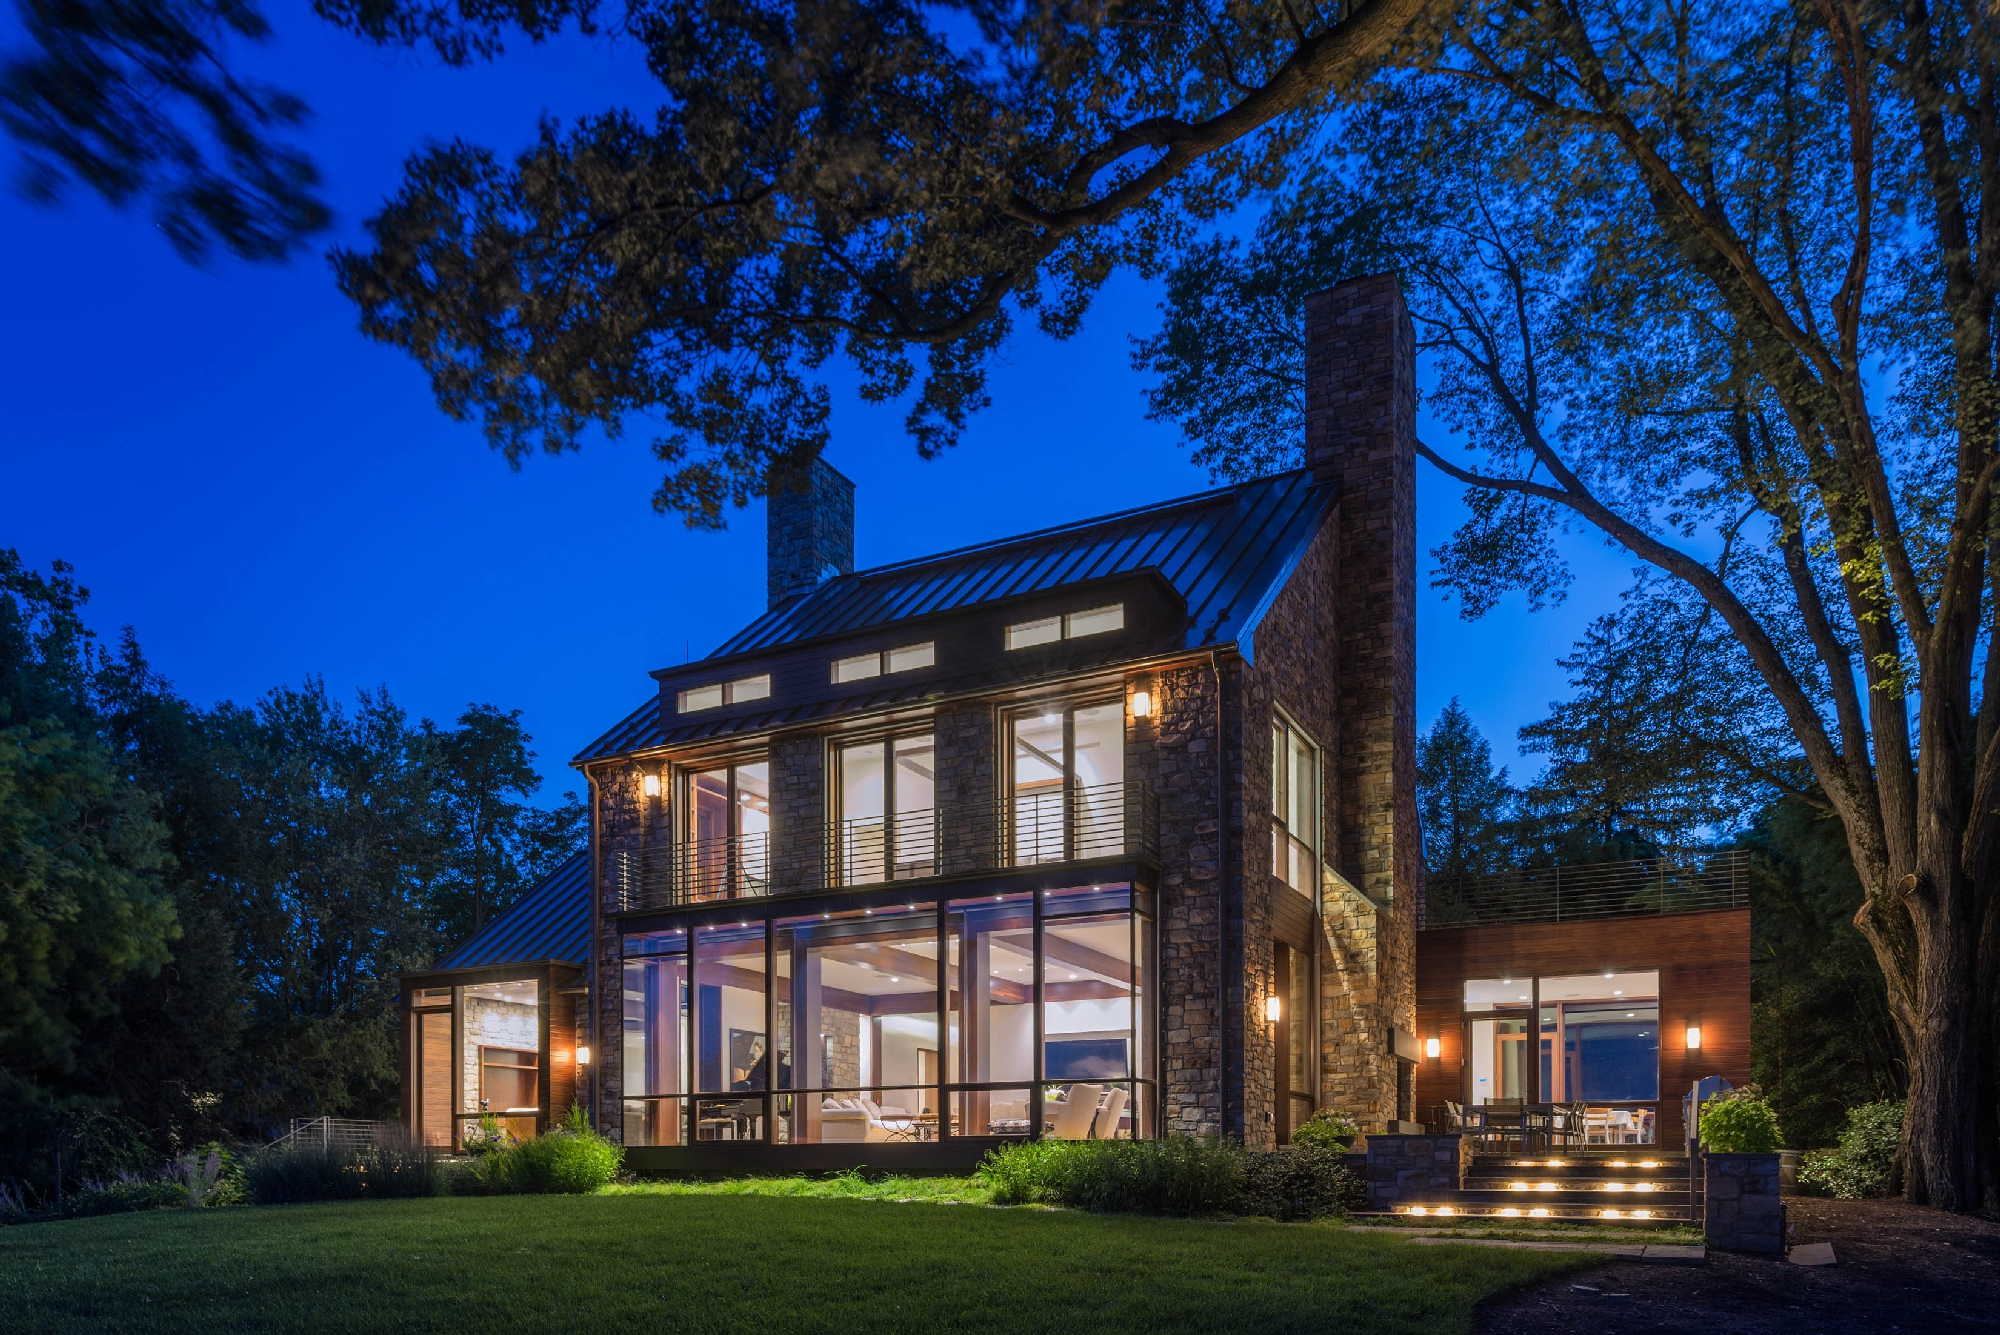 Modern Farmhouse Marries the Best of Old and New